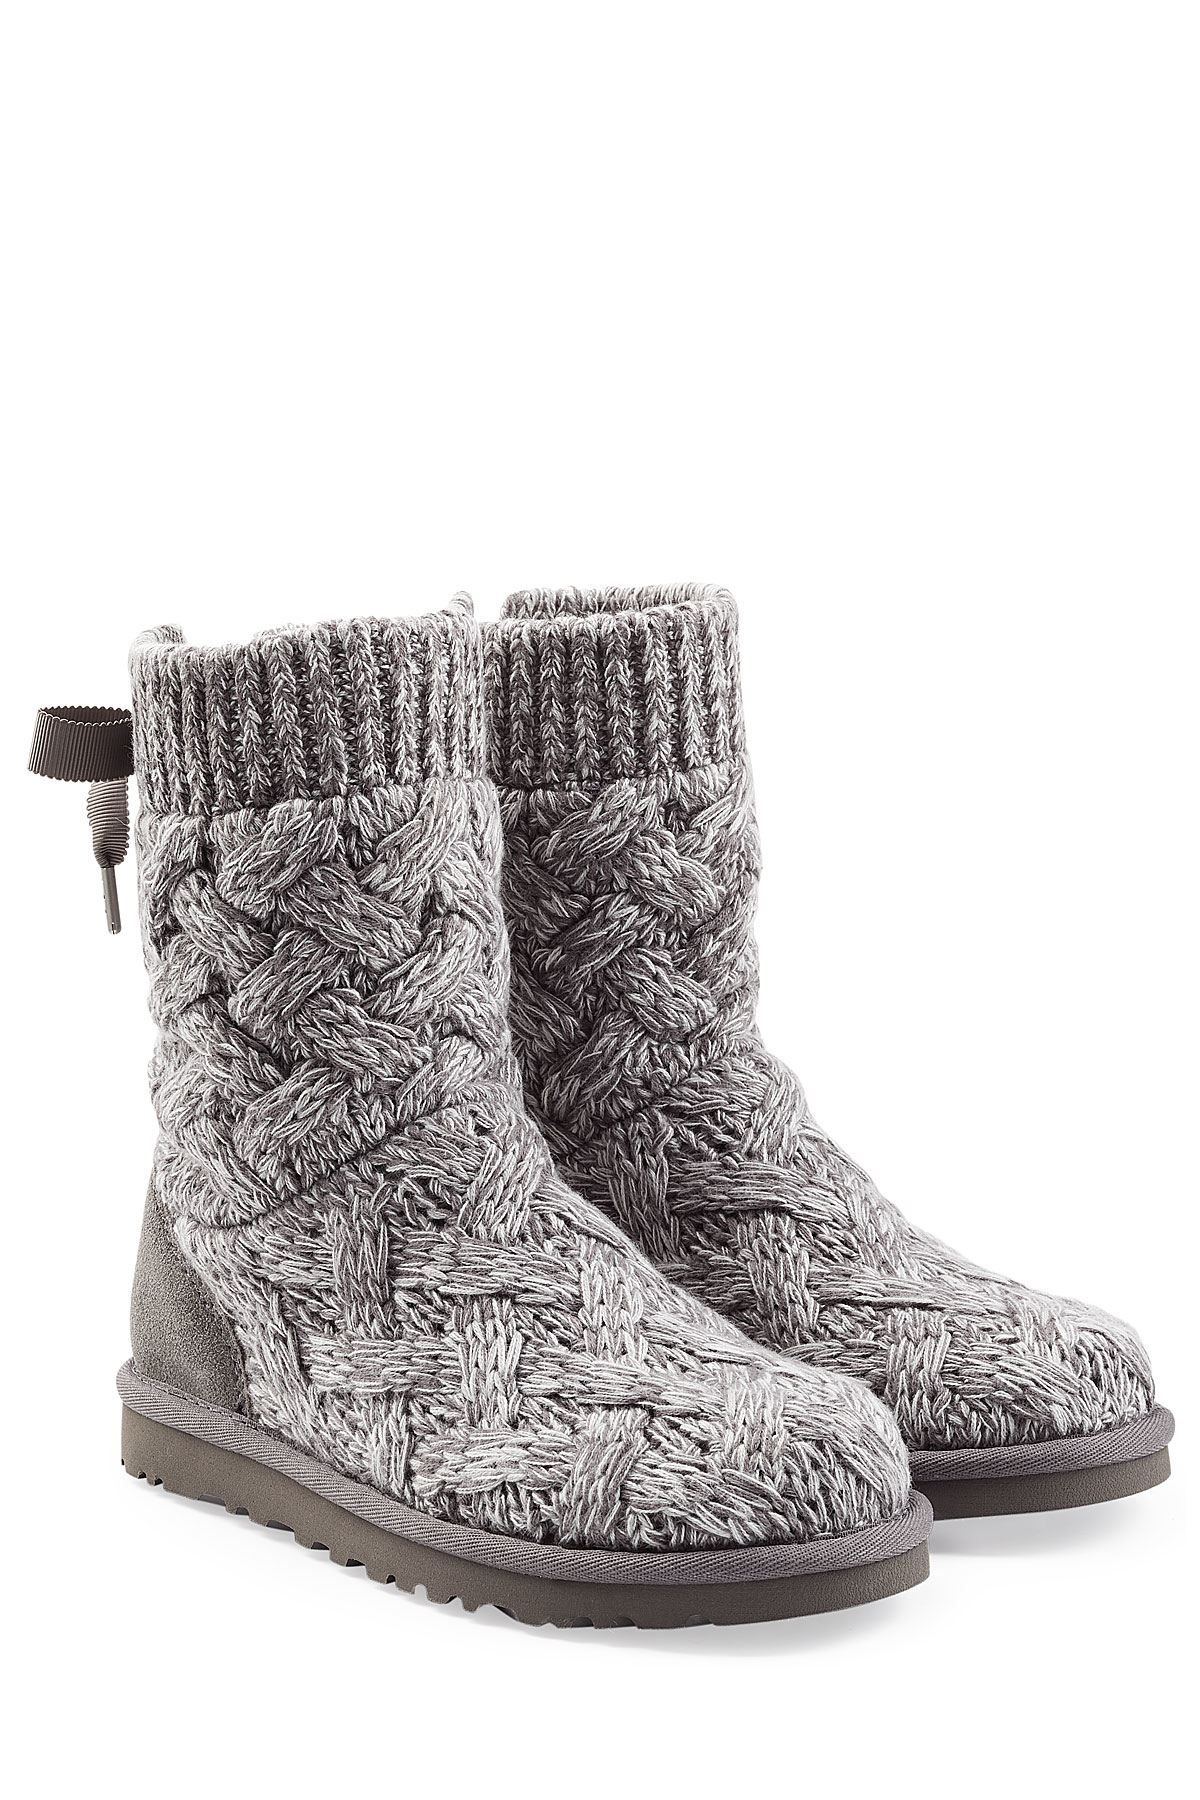 496aa59a932 Ugg Gray Isla Knit Boots - Compare At $150